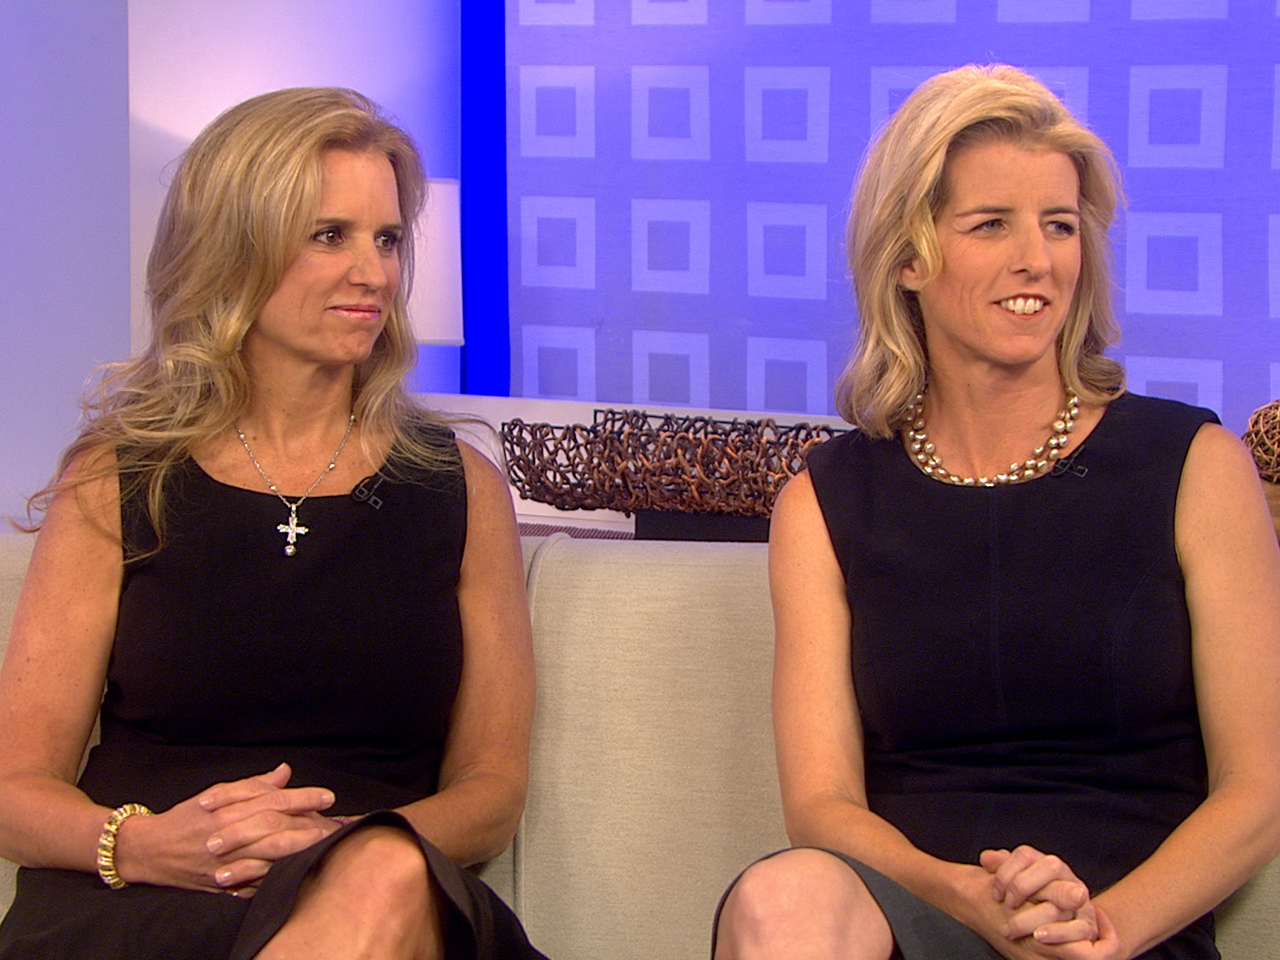 RFK daughter Rory Kennedy tells her mother's story - TODAY.com | 1280 x 960 jpeg 971kB